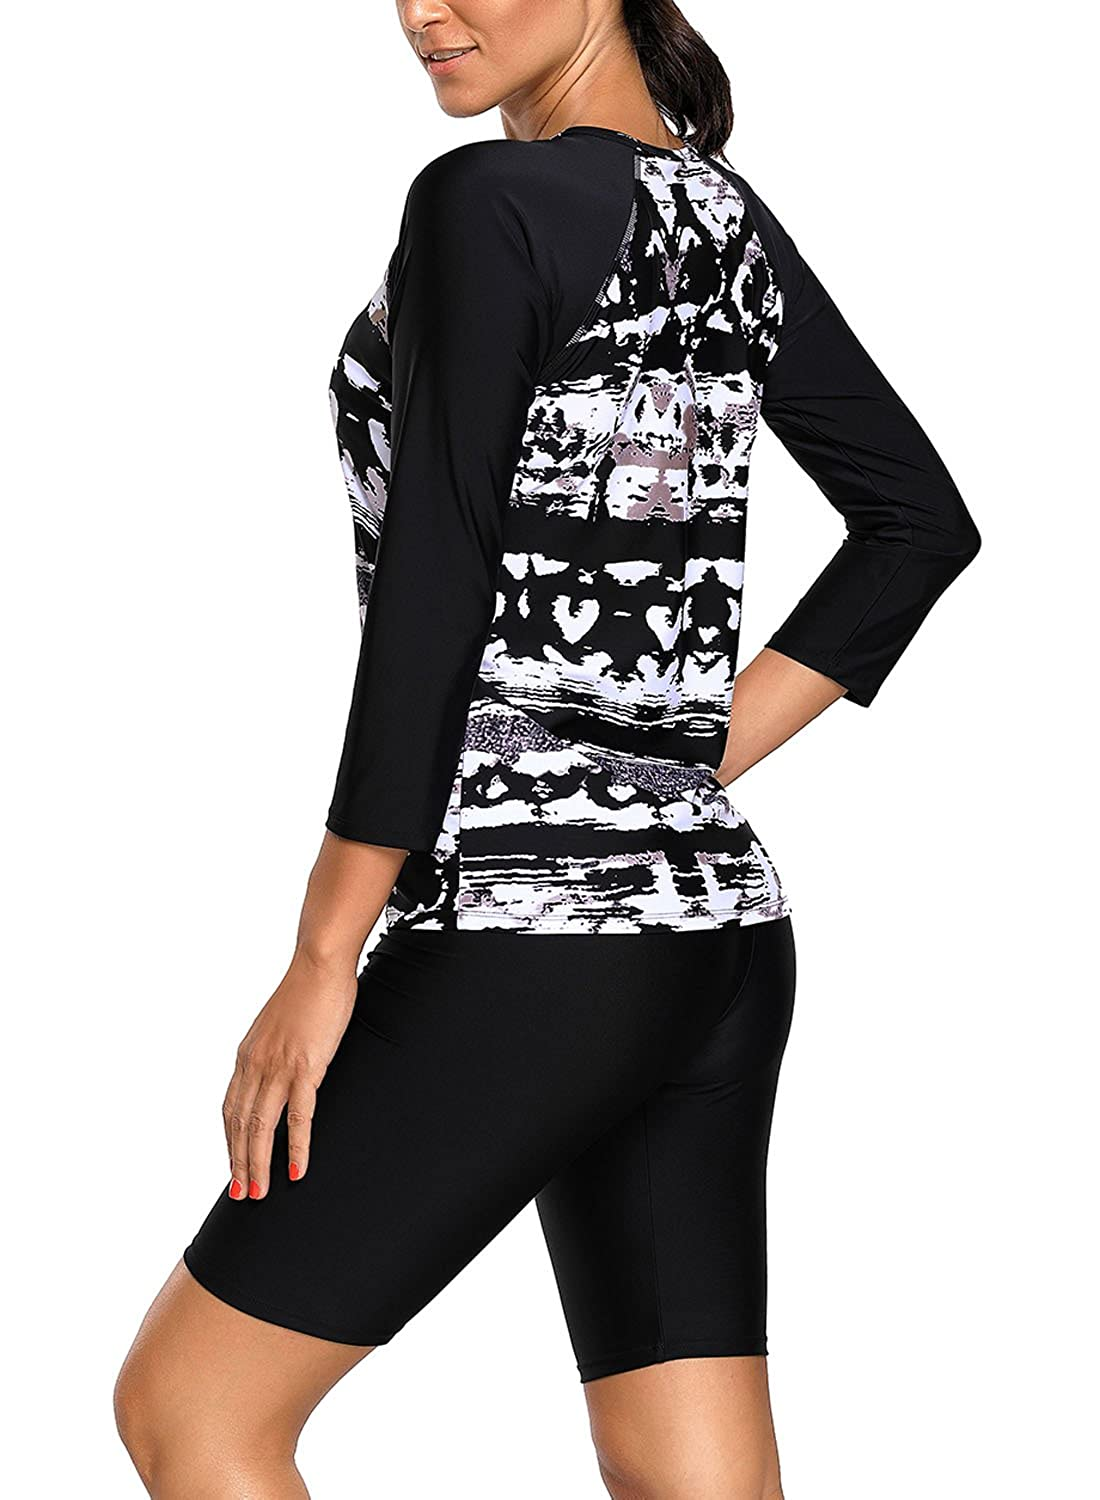 S-XXL EVALESS Womens Black Monochrome Abstract Print Long Sleeve Top and Cropped Pants Rashguard Swimsuit